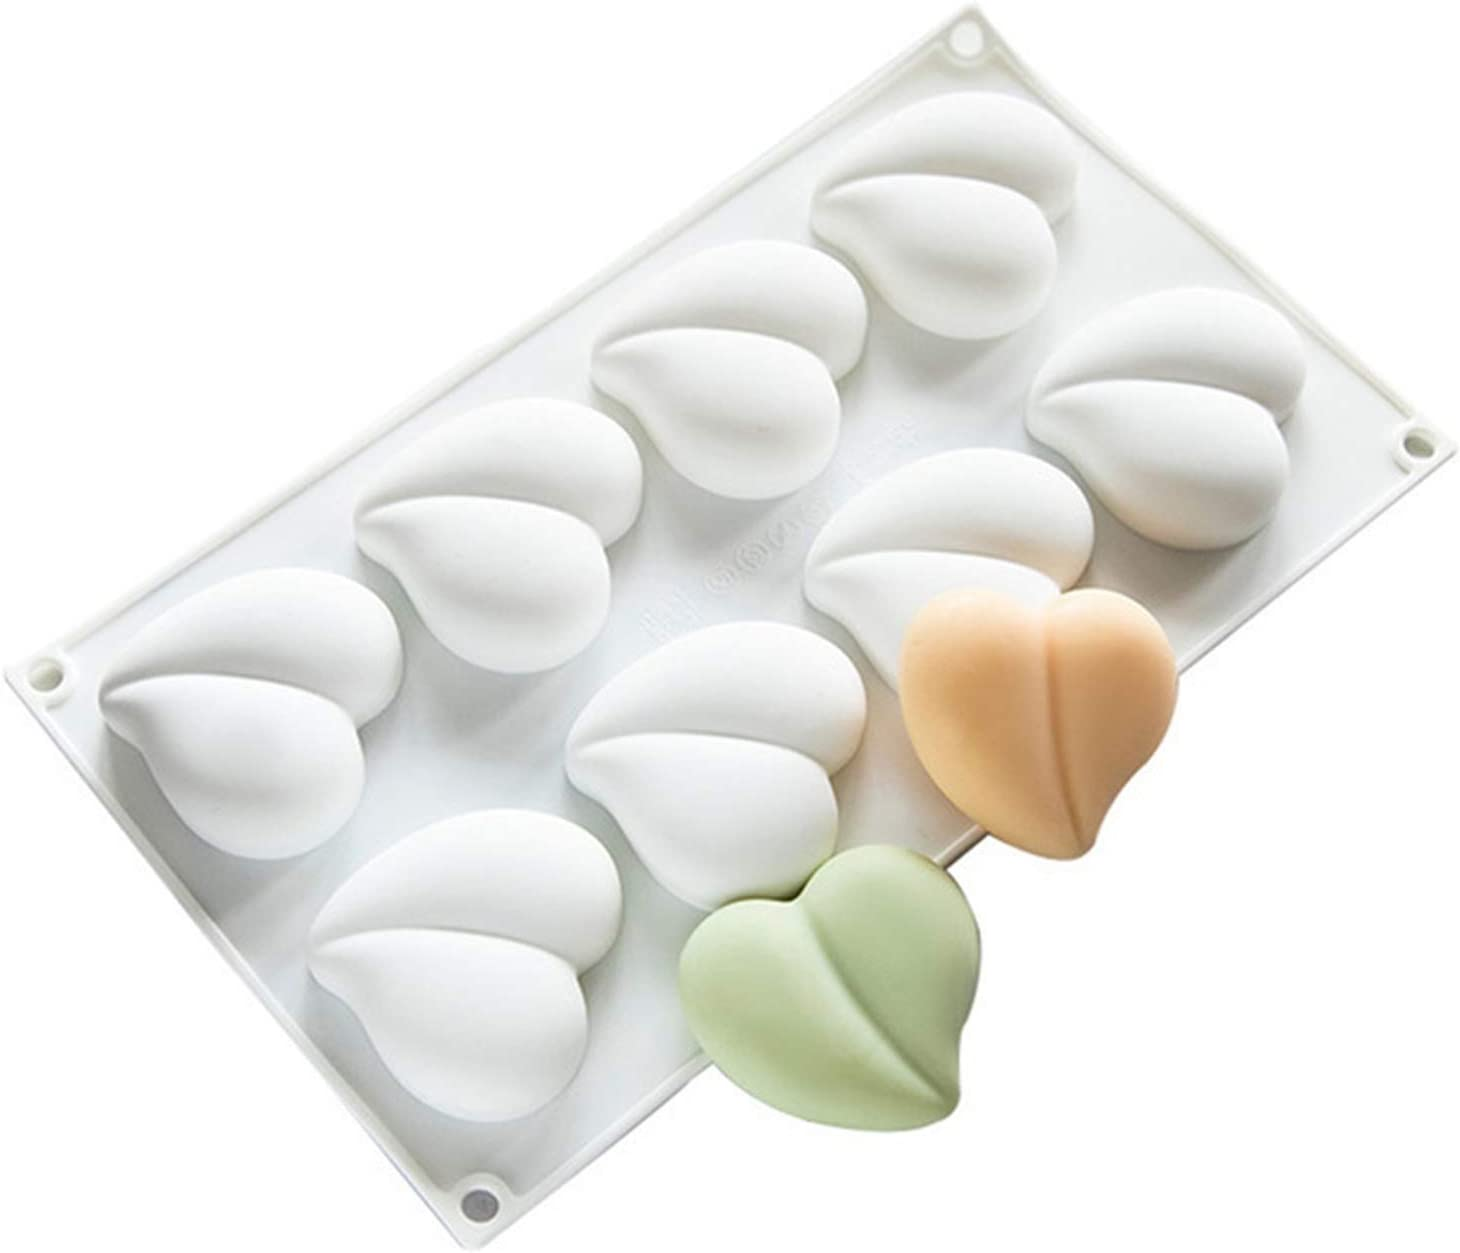 CGRTART Soap Base 8 Cavity Peach DIY Silicone Max 45% OFF Mold Manufacturer OFFicial shop Handmad Heart